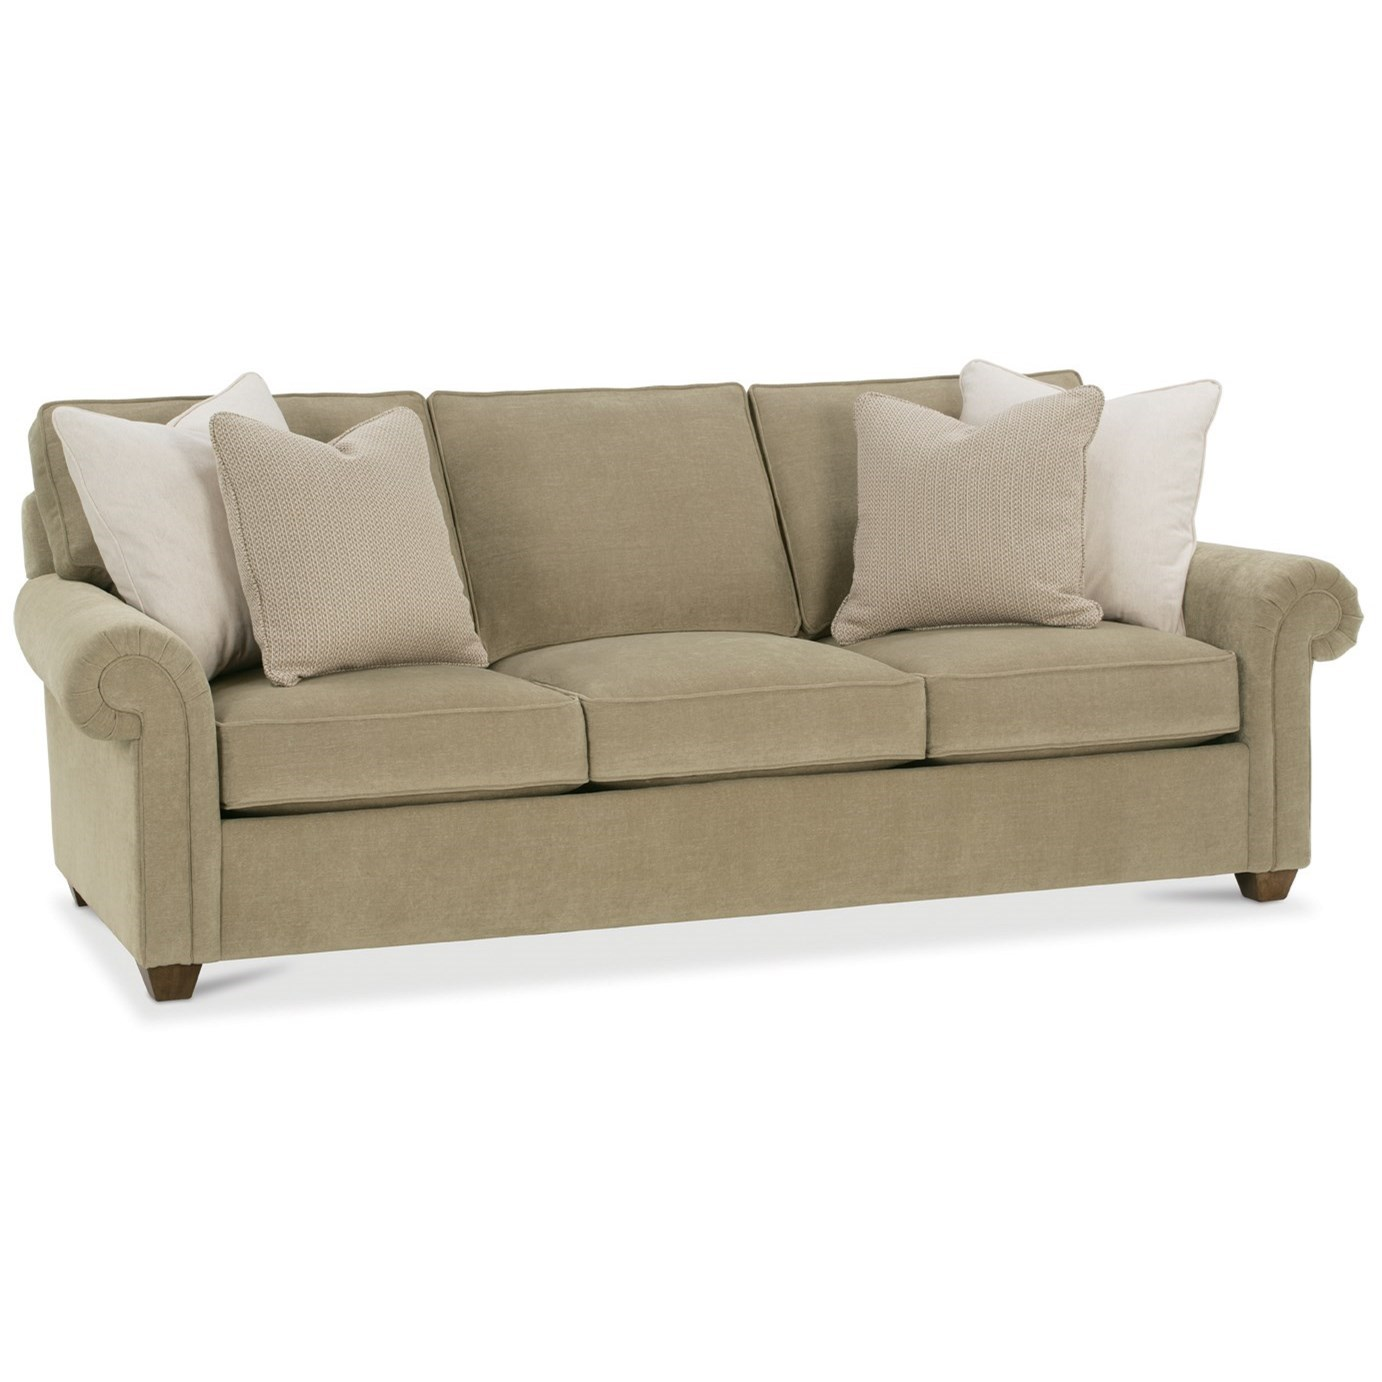 Rowe Morgan N700 002 Traditional Stationary Sofa With Nailhead Trim Becker Furniture World Sofas